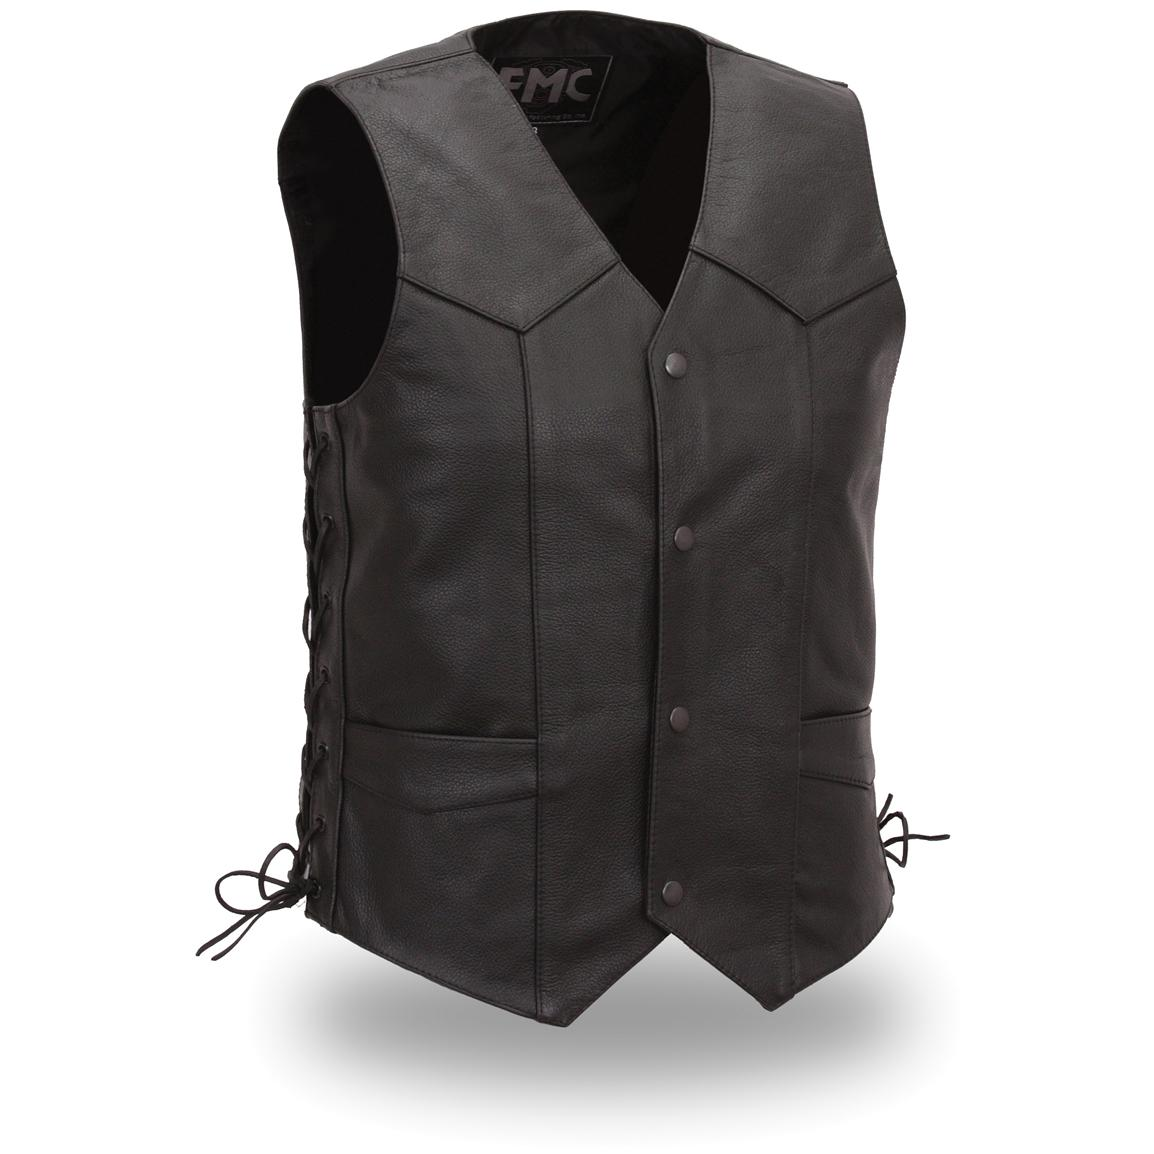 FMC® Classic Side-Lace Vest, Black